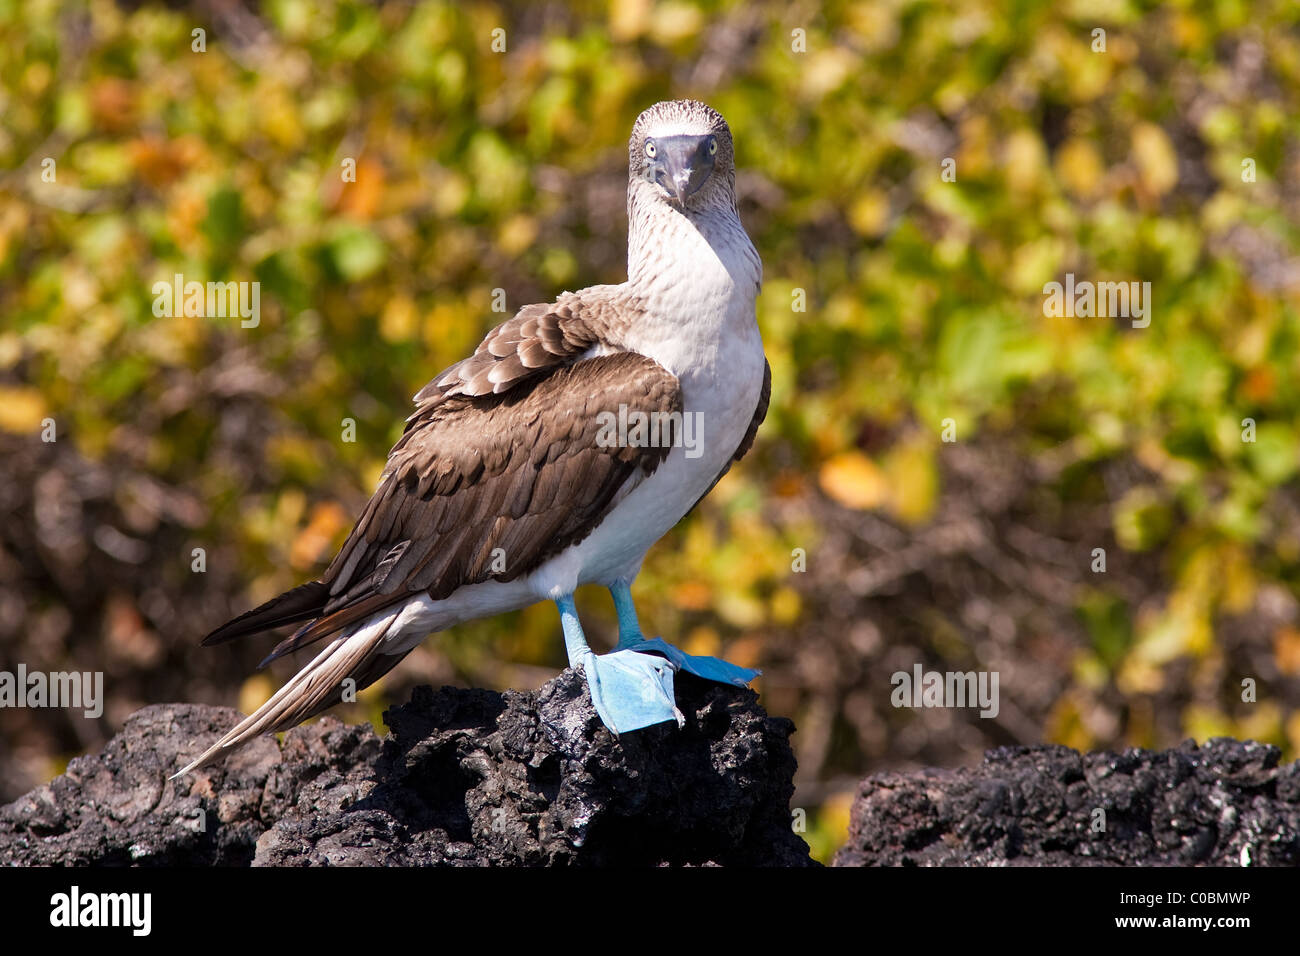 Blue-footed booby standing on a rock in the Galapagos Islands staring straight ahead. Blurred yellow green foliage - Stock Image